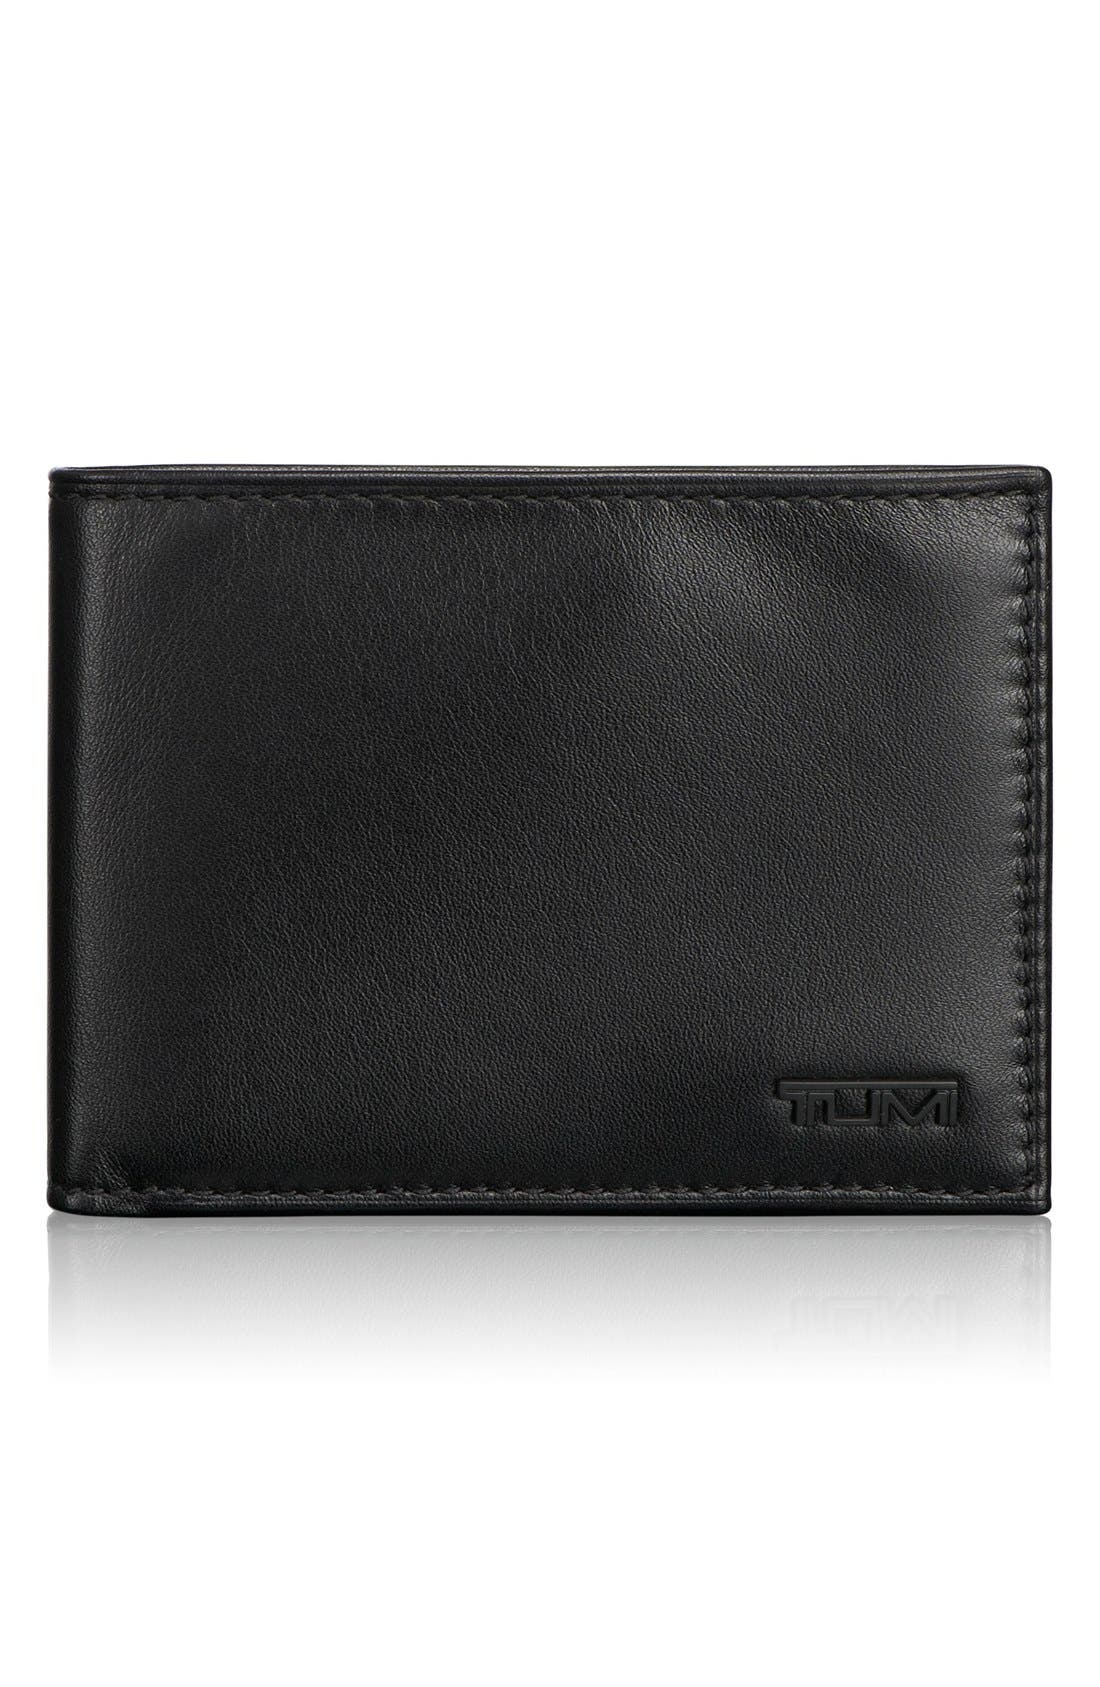 Alternate Image 1 Selected - Tumi 'Delta Global - ID Lock™' Shielded Double Billfold Wallet